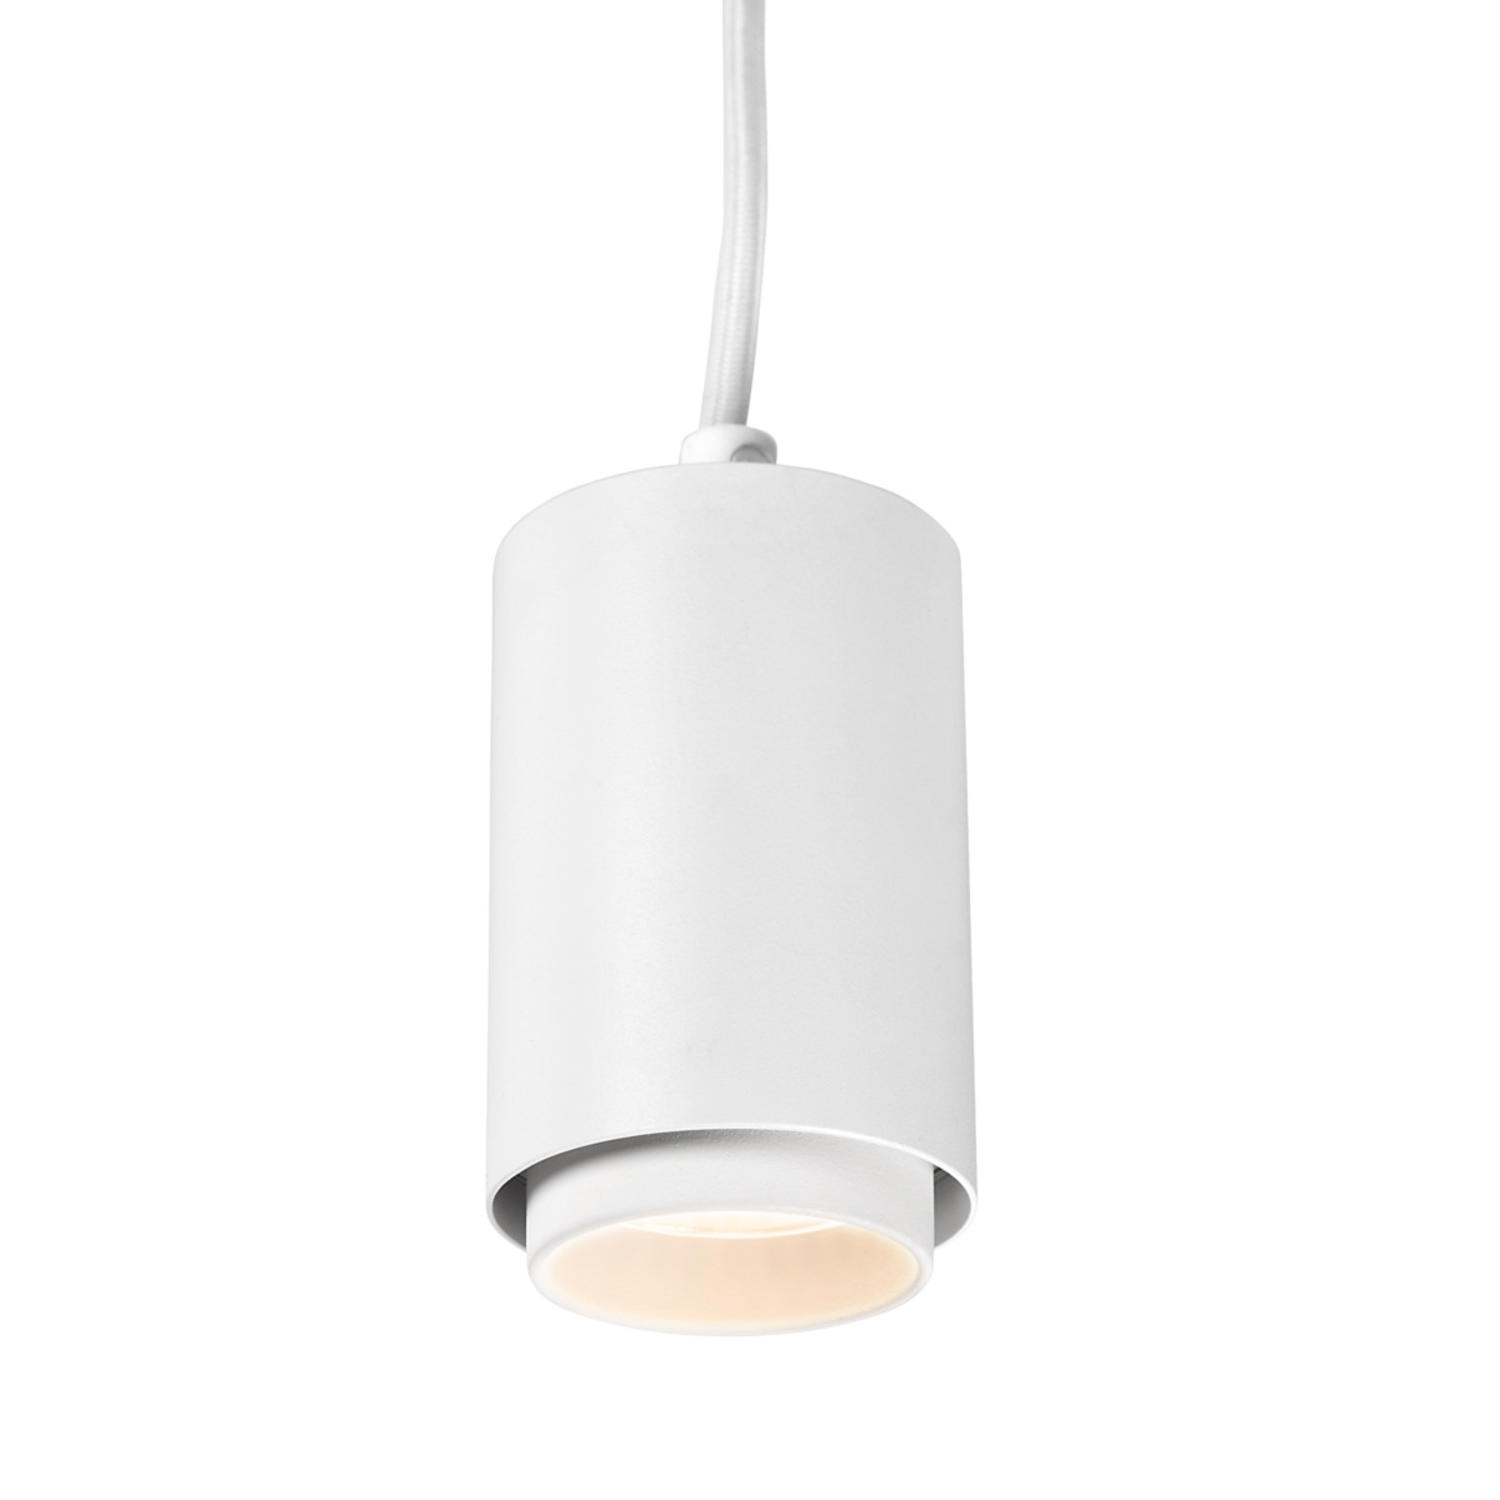 Focus Pendant Micro 1-phase 36° White Tune